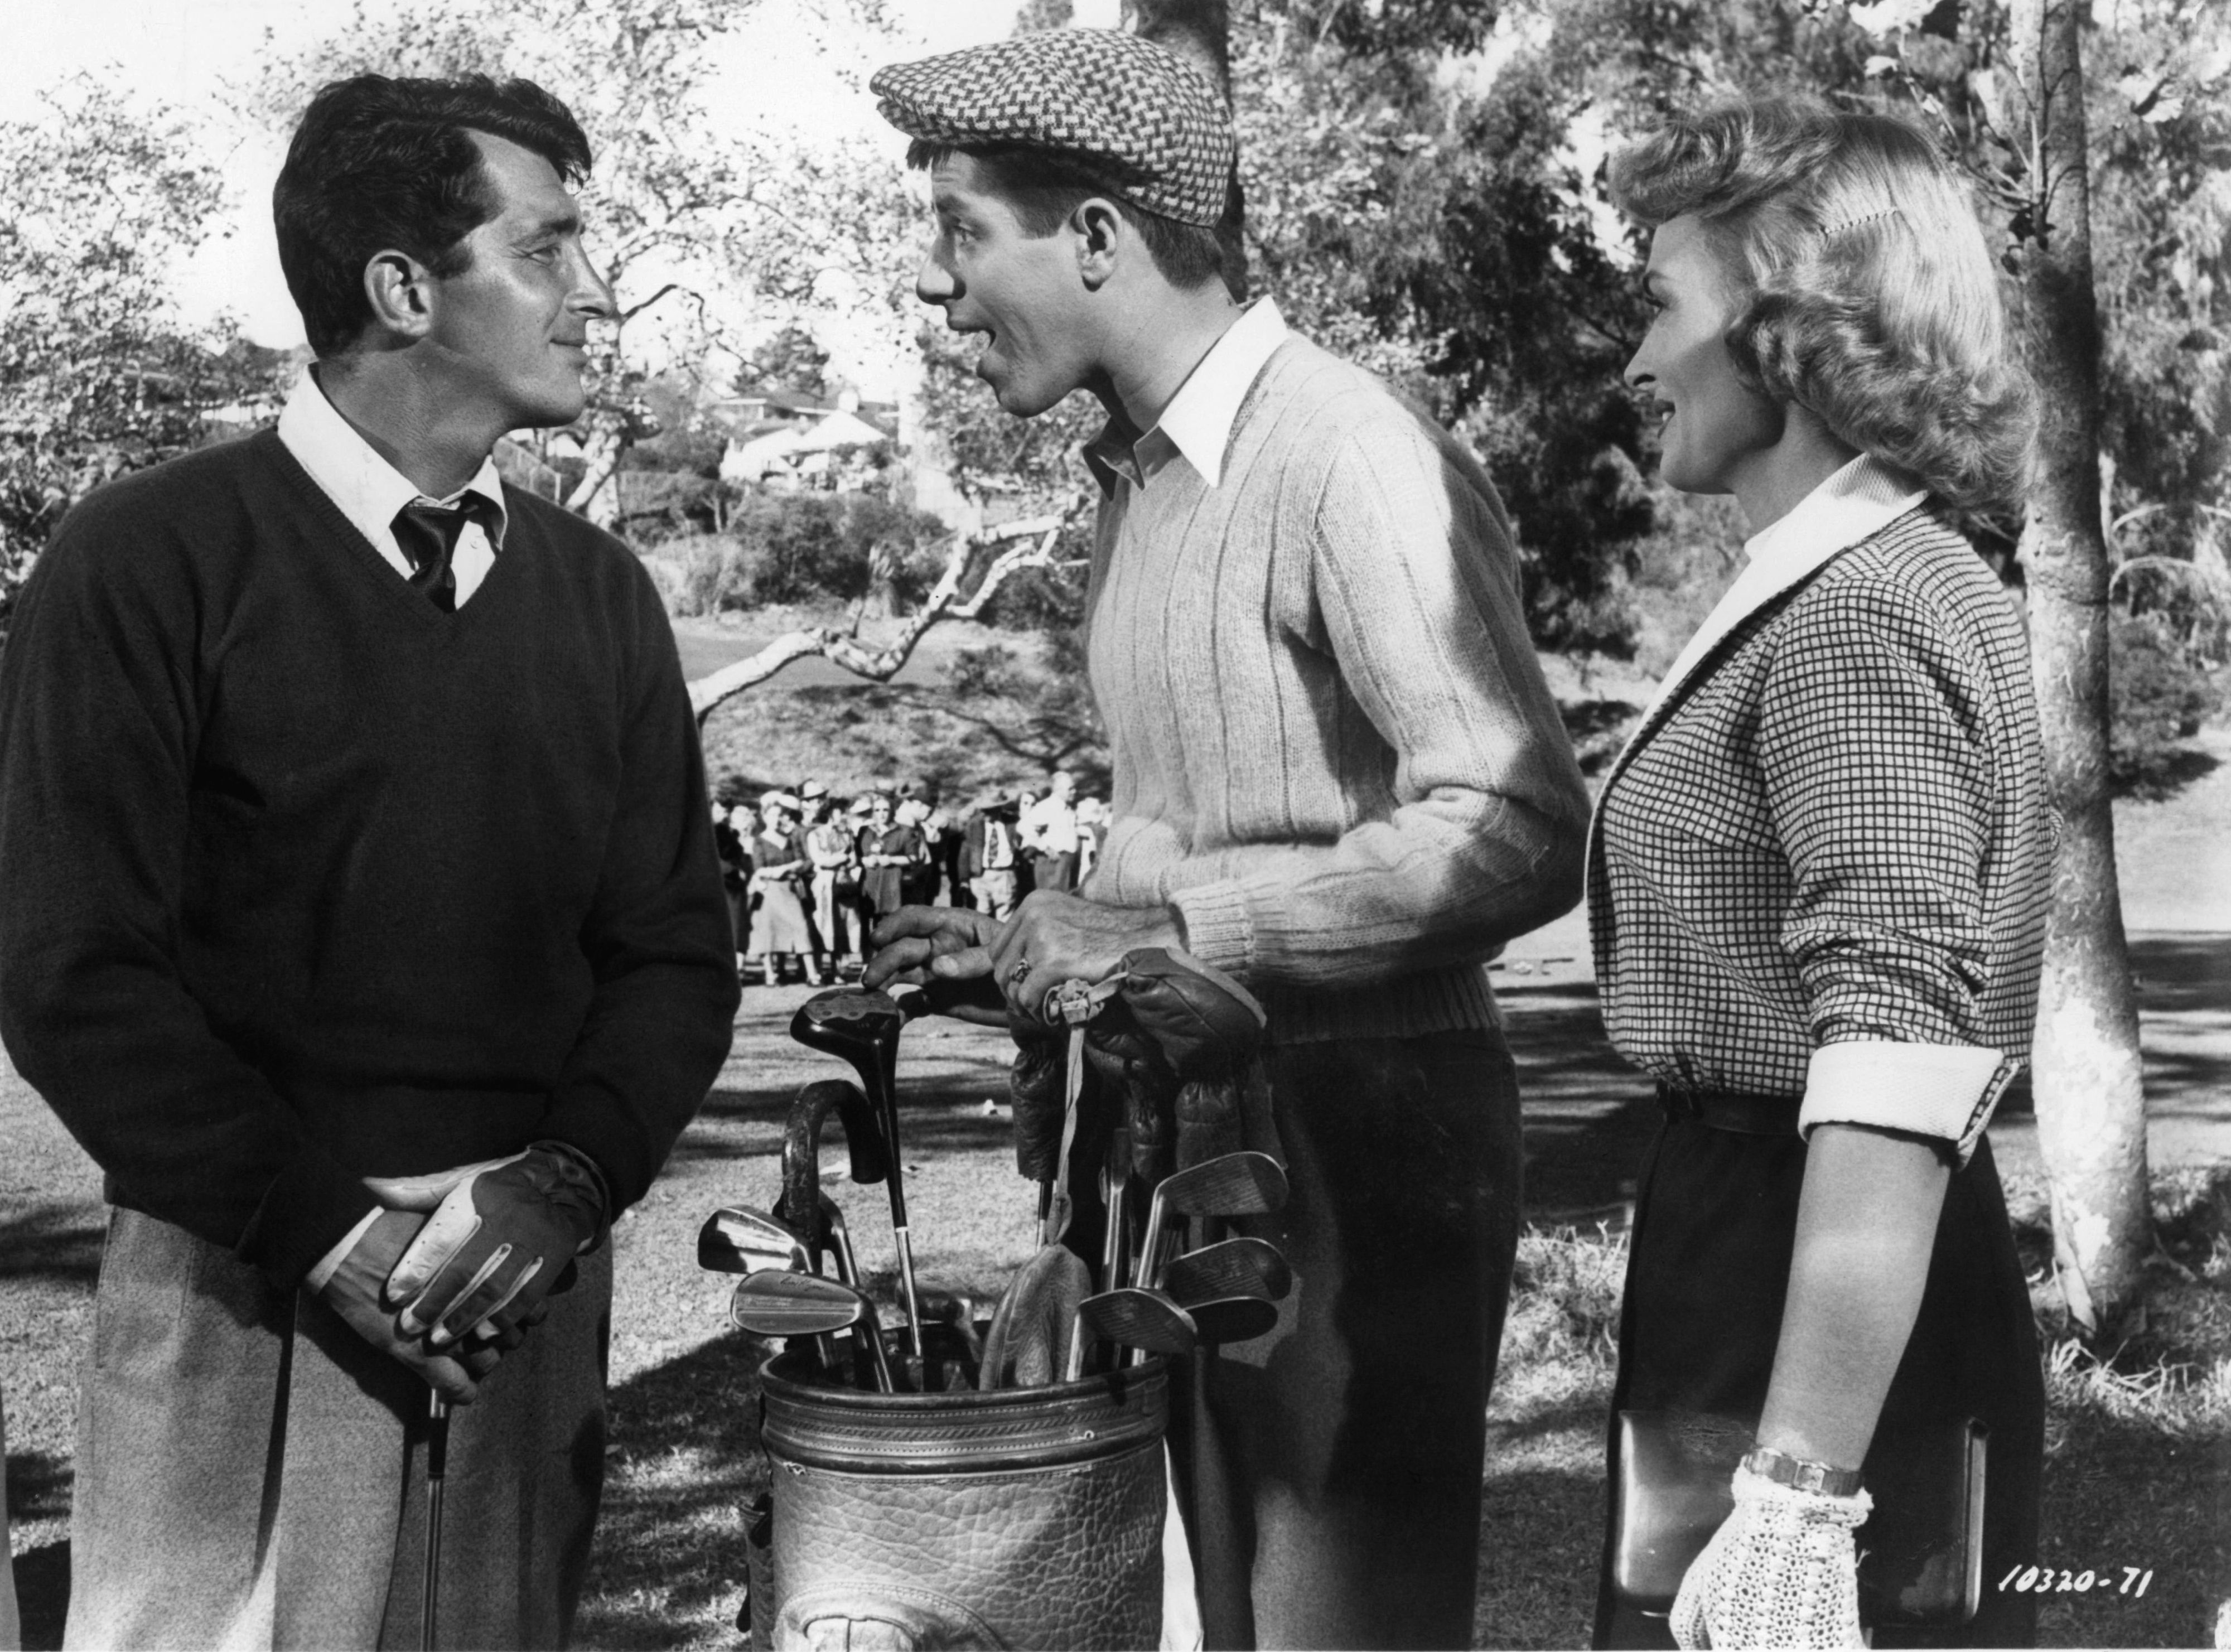 Dean Martin, Jerry Lewis and Donna Reed in The Caddy